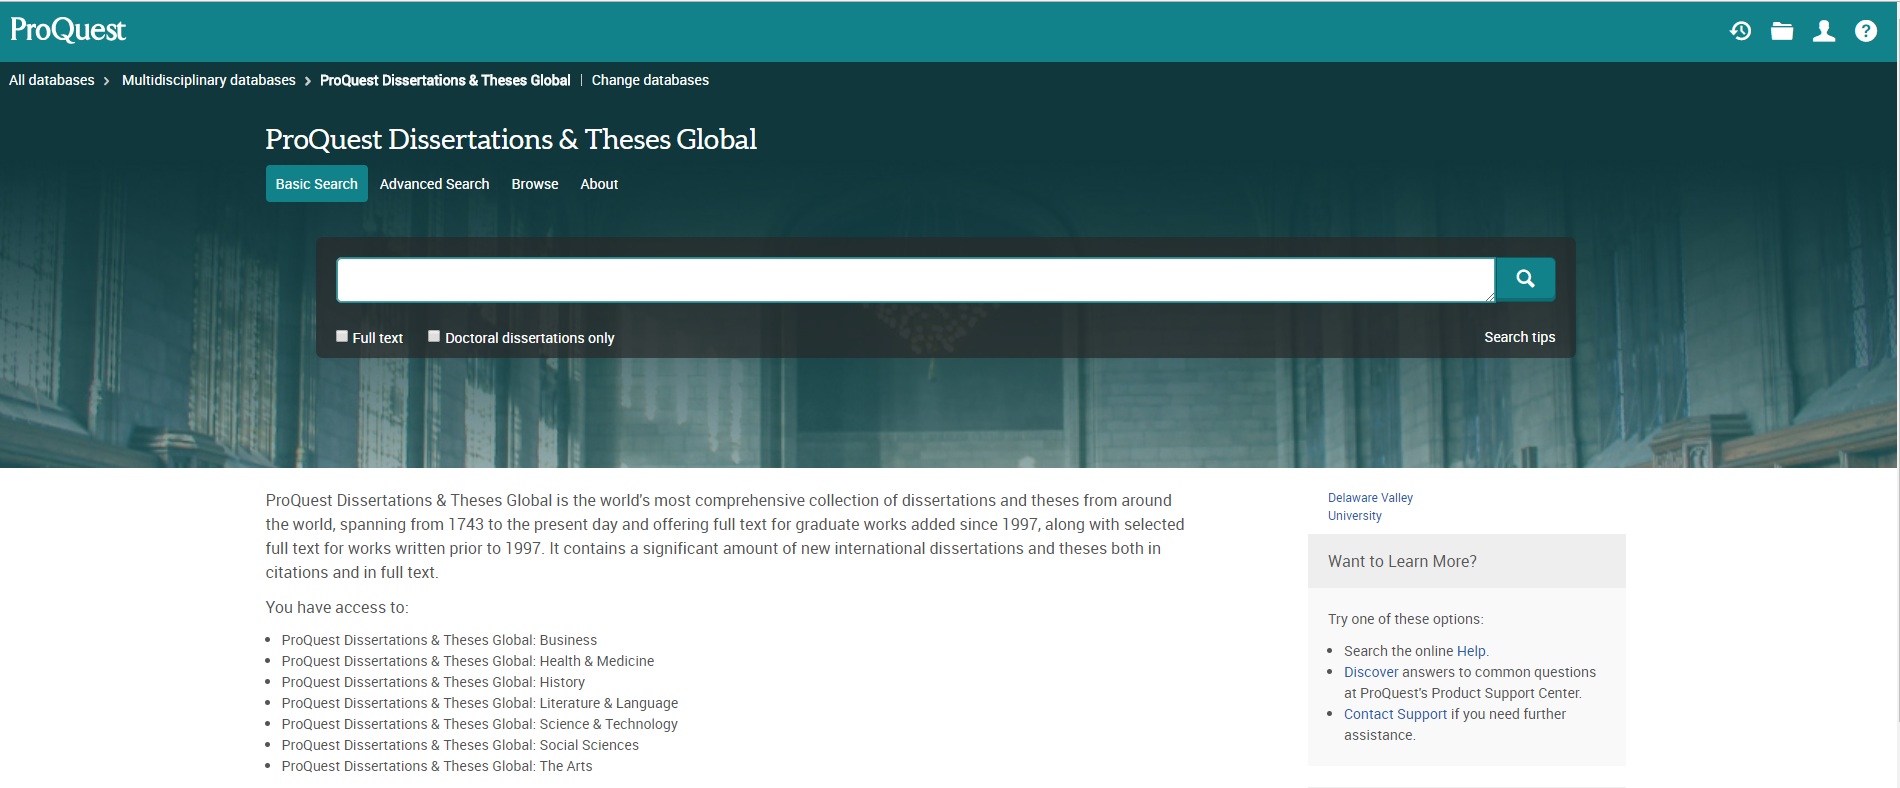 Dissertations & Theses Global